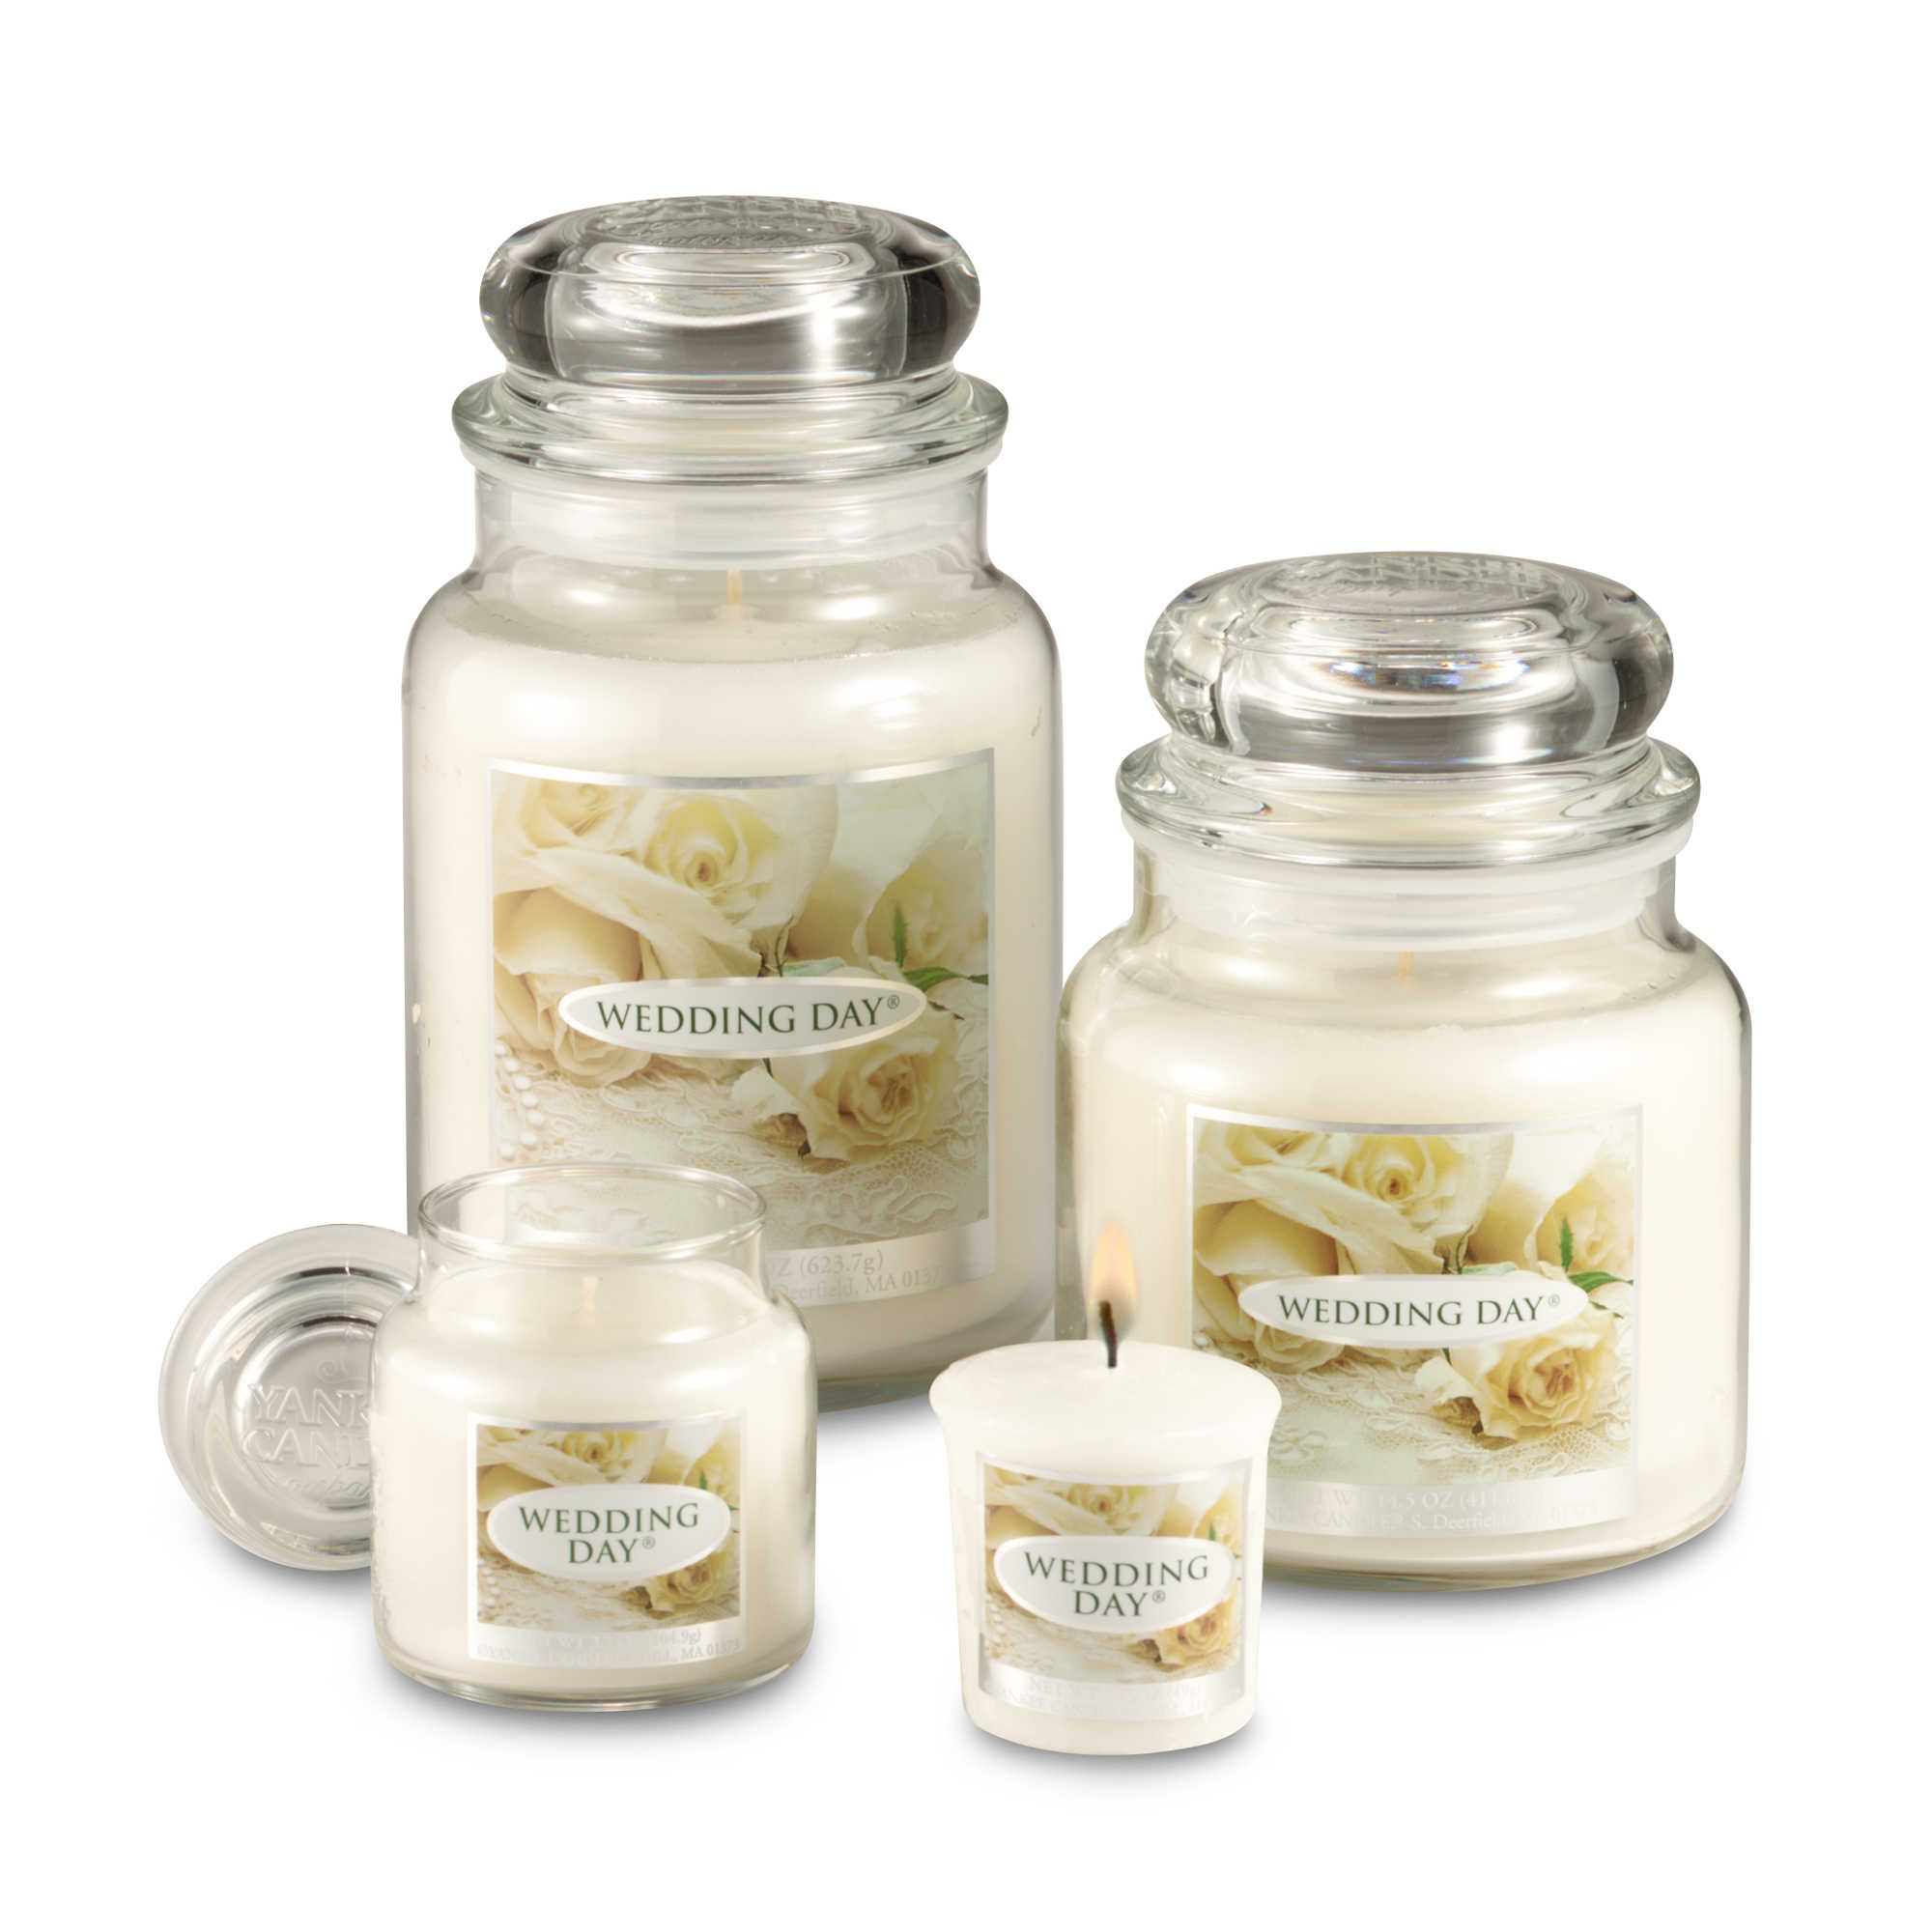 Yankee Candle® Wedding Day™ Scented Candles | Herring-Borrelli ...